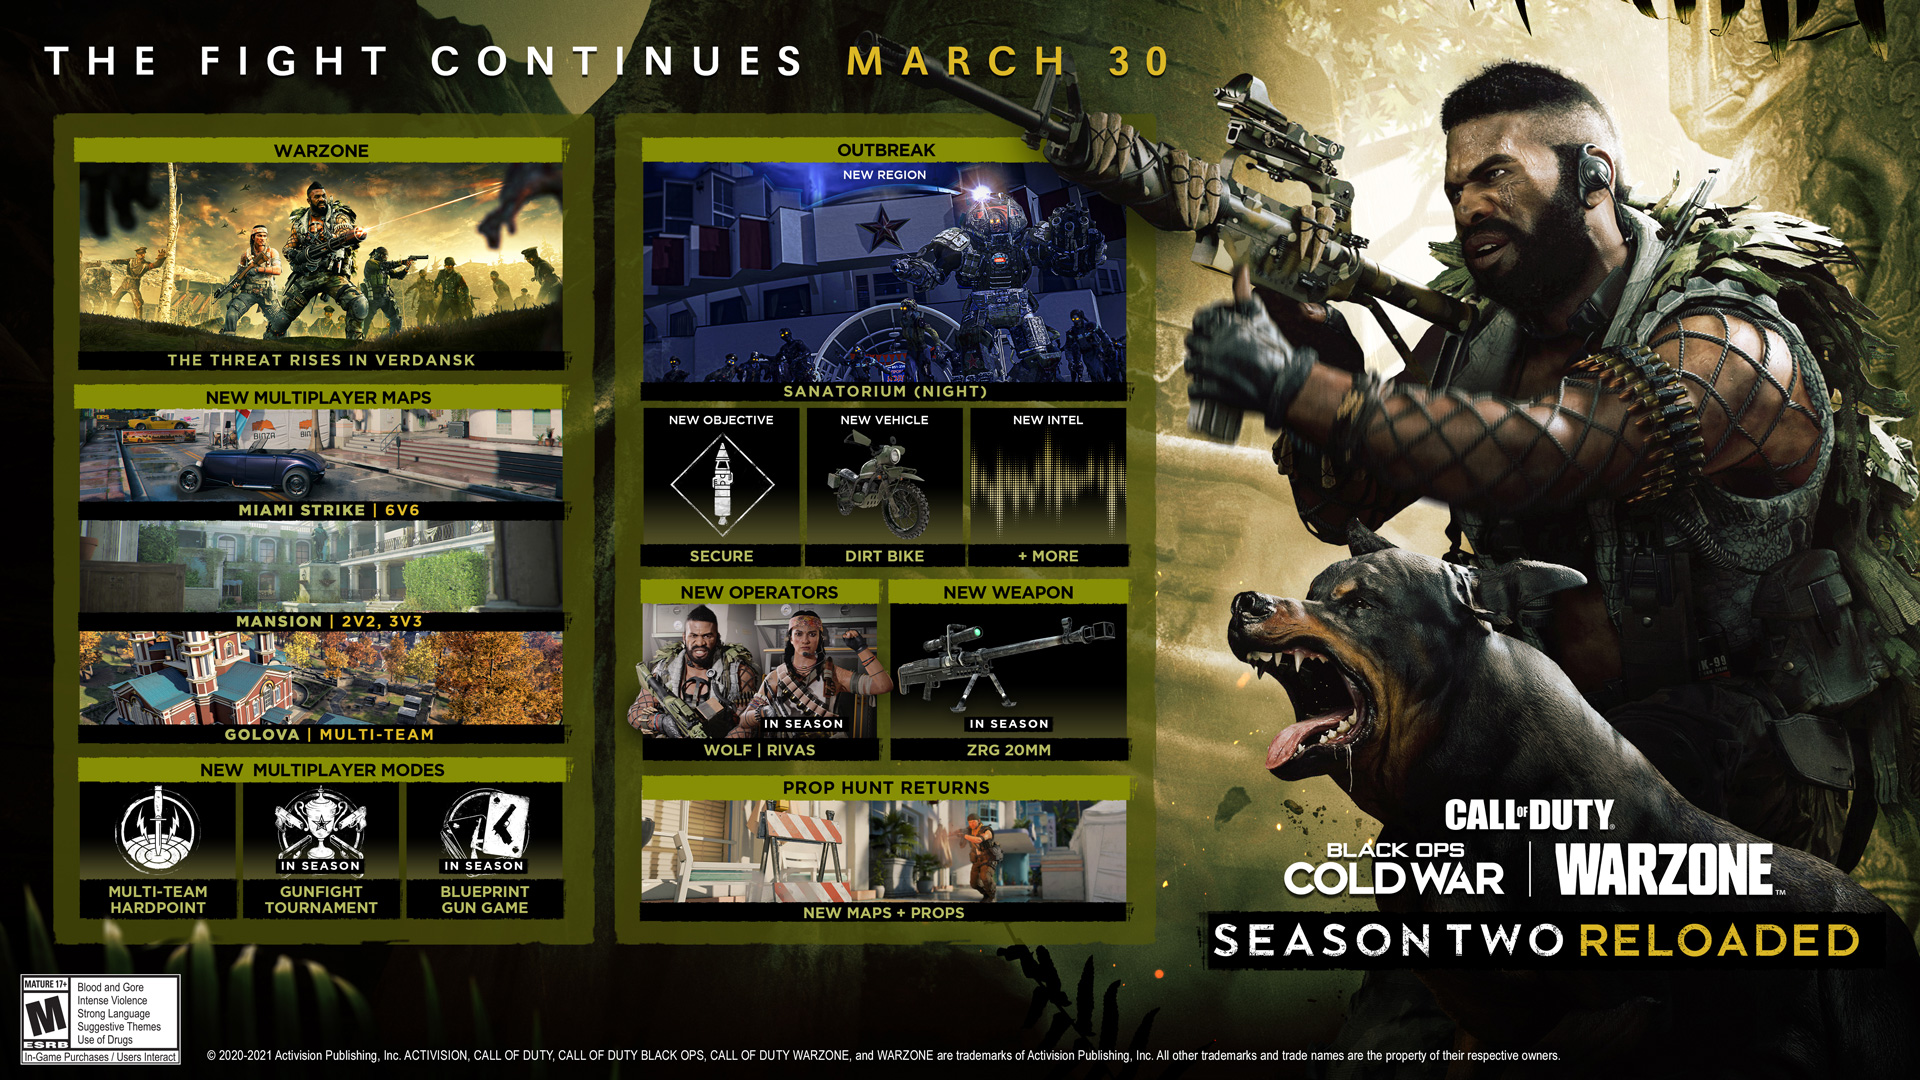 call of duty black ops cold war & warzone season 2 reloaded